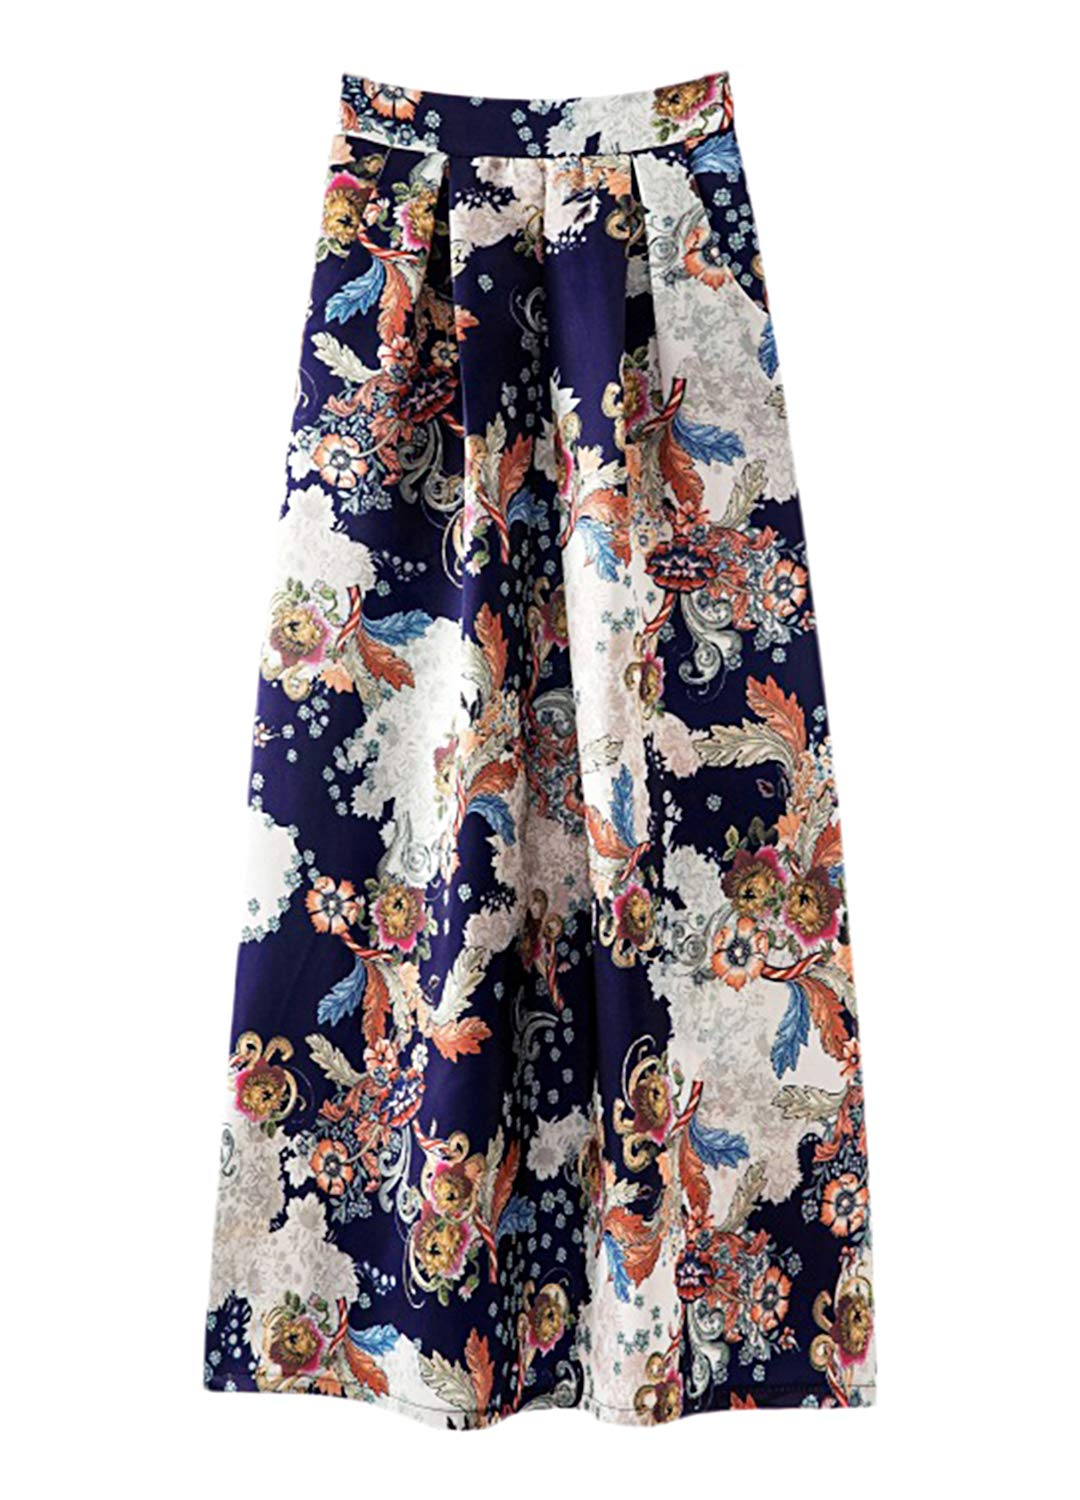 Novia's Choice Women African Floral Print Pleated High Waist Maxi Casual A-Line Skirt(Navy Geometric M)